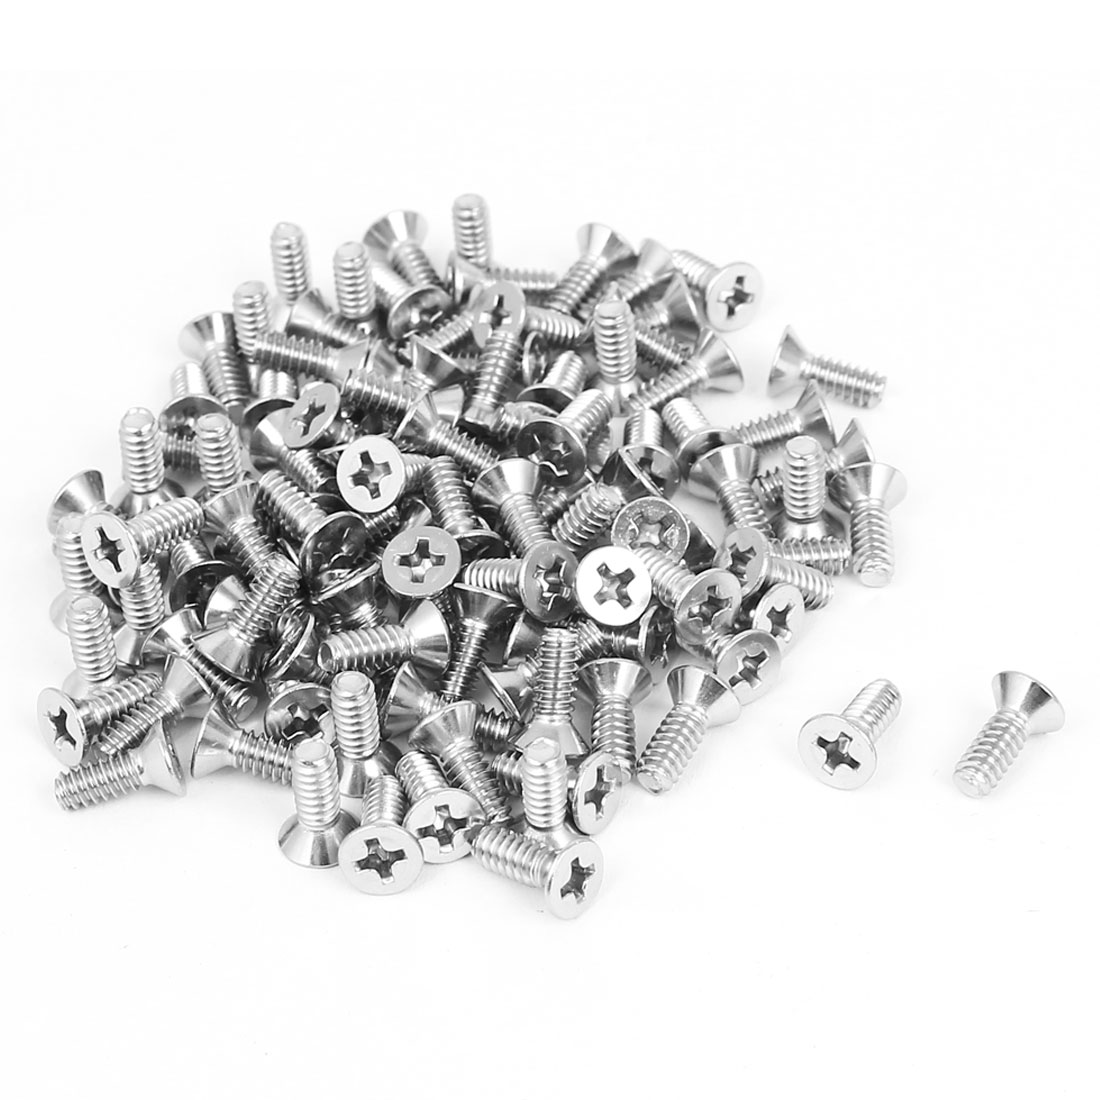 "6#-32x3/8"" Phillips Flat Countersunk Head Machine Screws 100pcs"